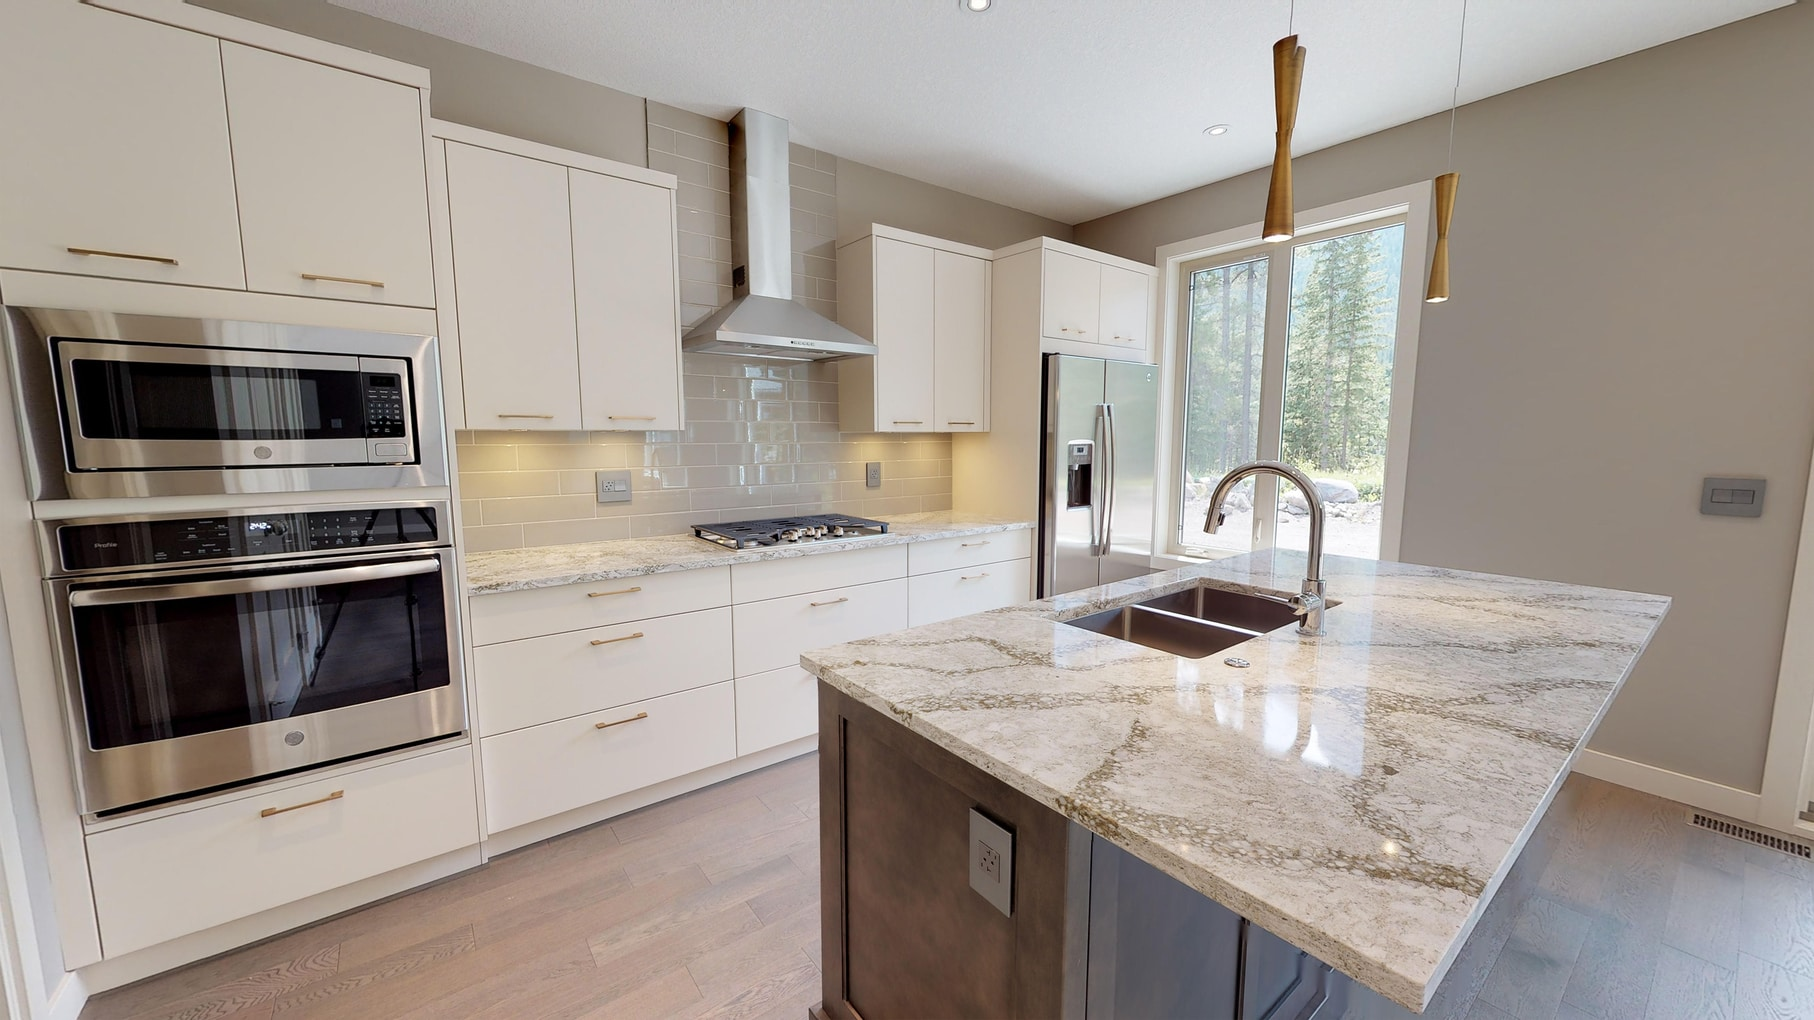 A kitchen view of our custom home, the Carrionton Unit.